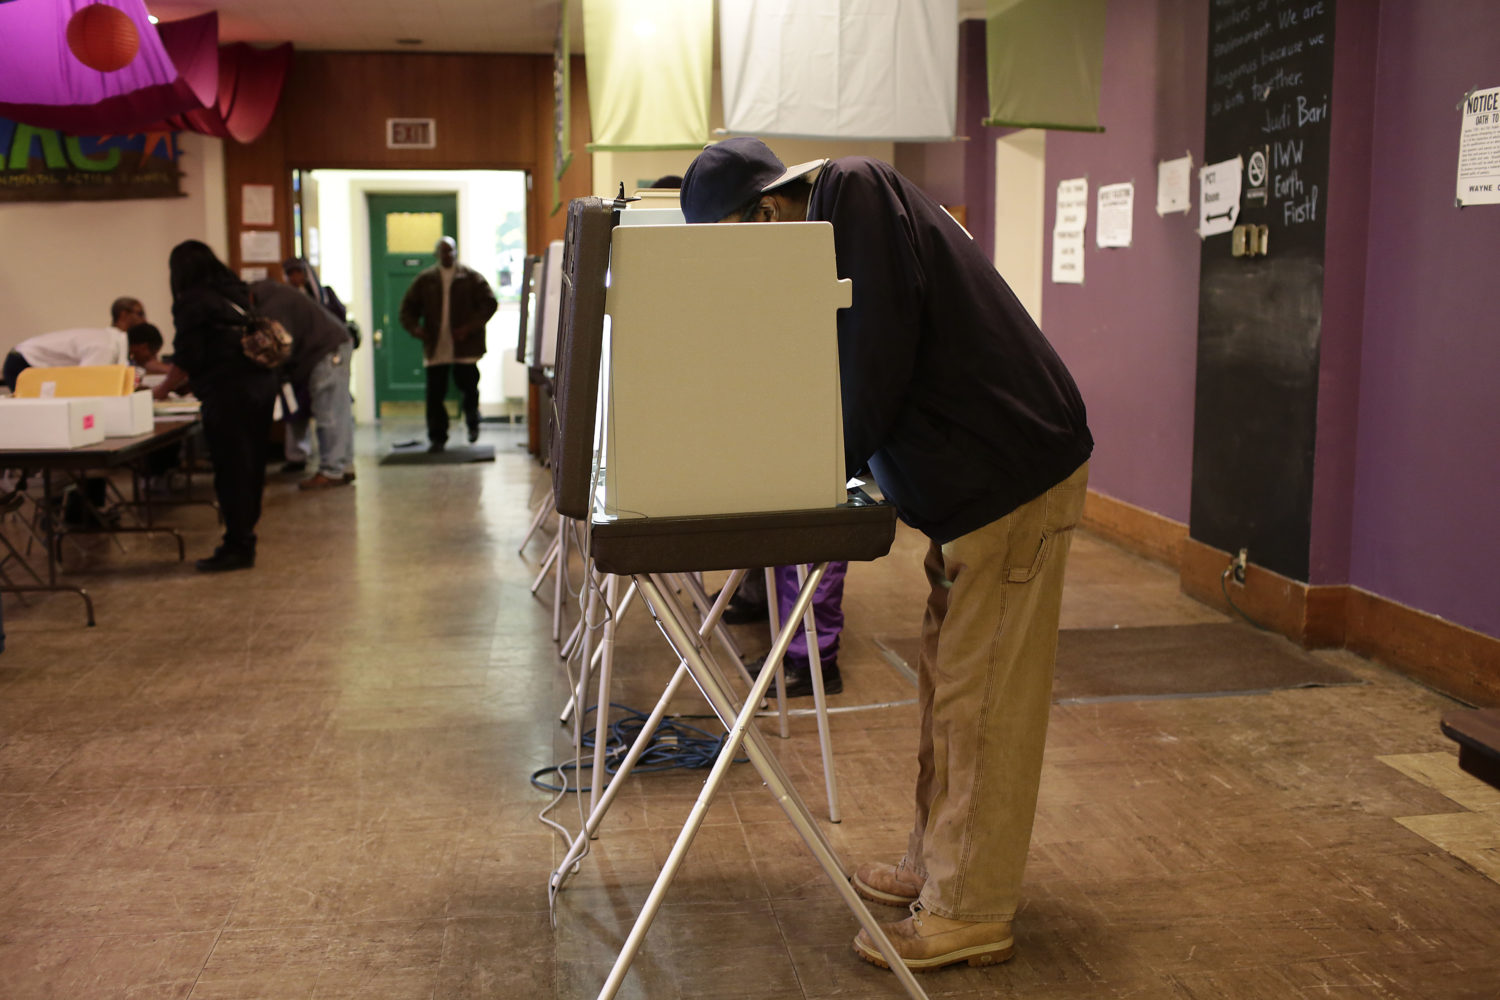 A man fills out his ballot at a polling station during the midterm elections Nov. 4, 2014 in Detroit.